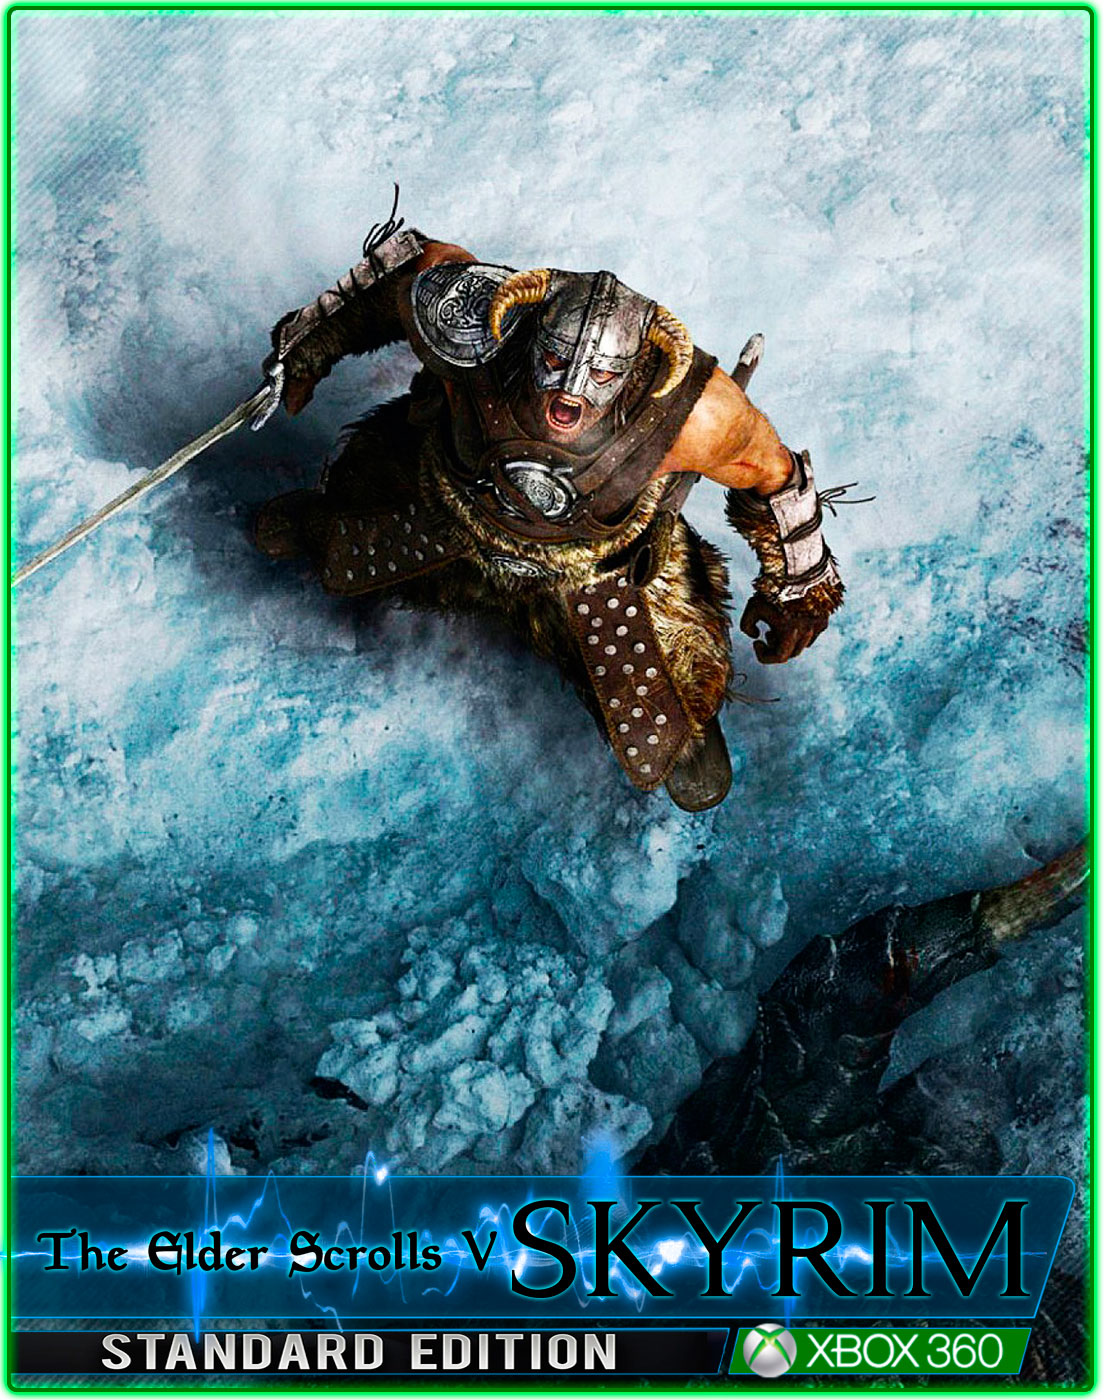 Skyrim V the Elder Scrolls(Global Key XBOX 360)